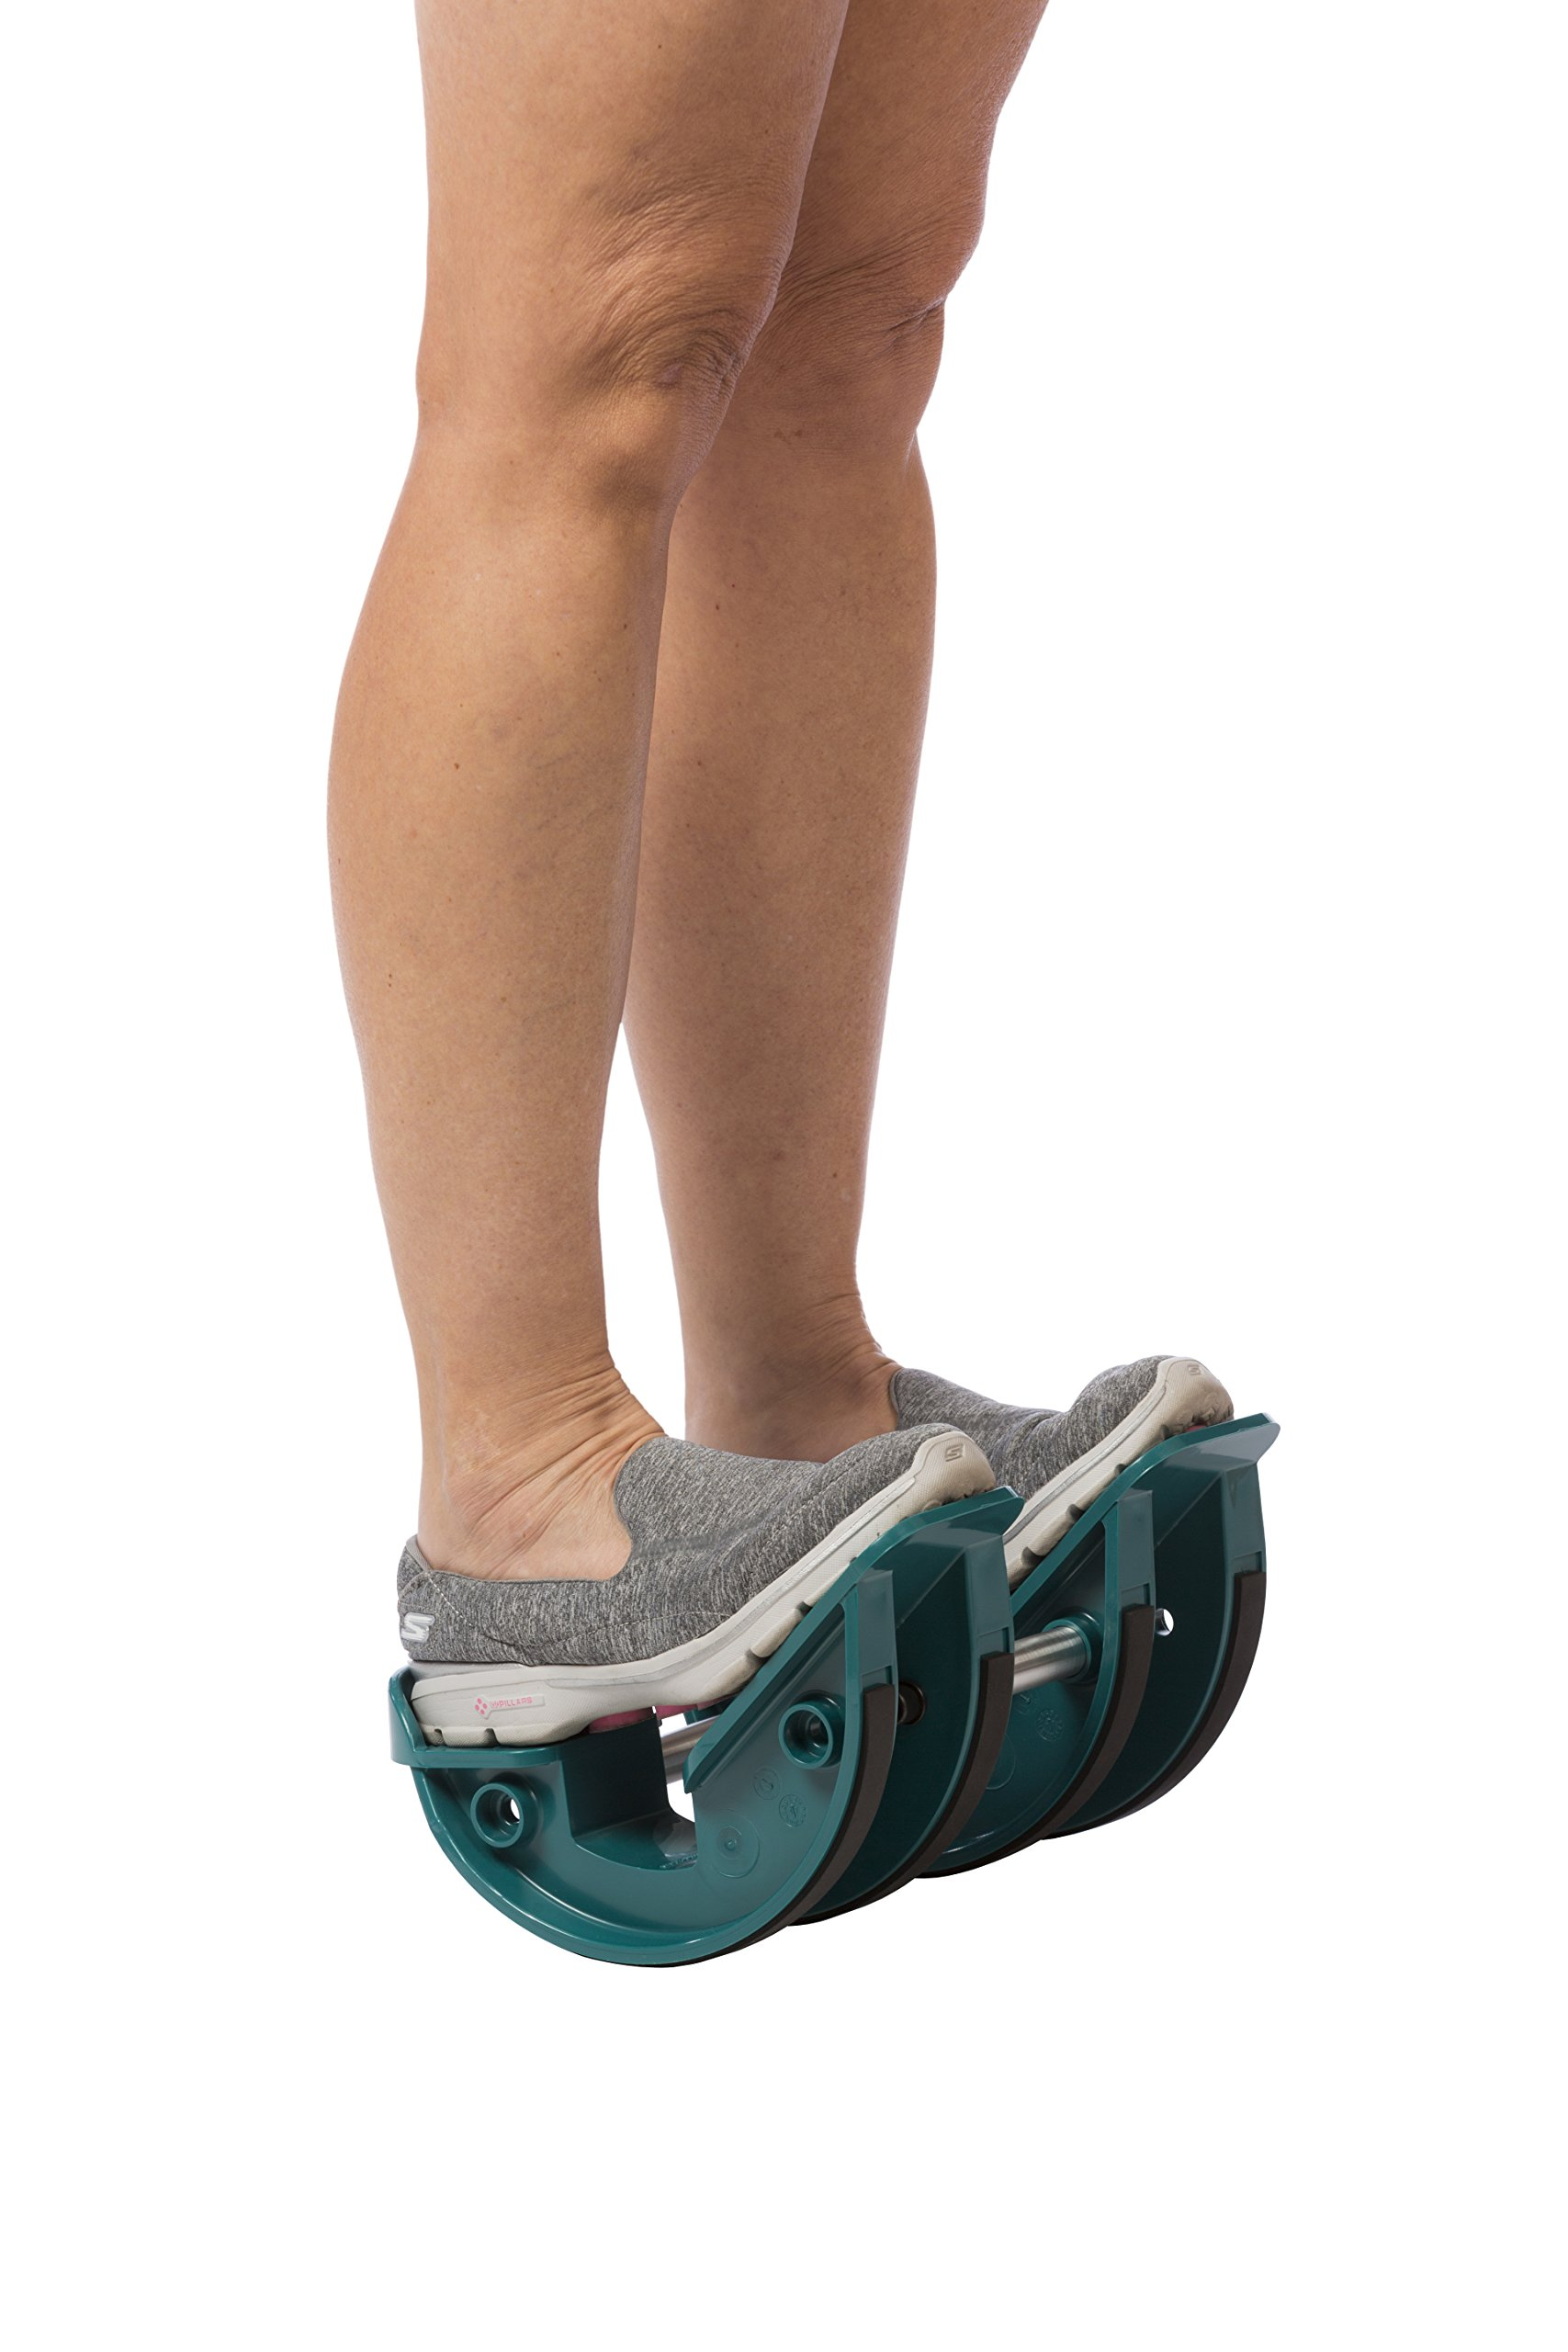 ProStretch StepStretch (Double) - Calf Stretcher & Foot Rocker for Pain Caused by Plantar Fasciitis, Achilles Tendonitis, & Tight Calves (Slip Resistant Bottom)